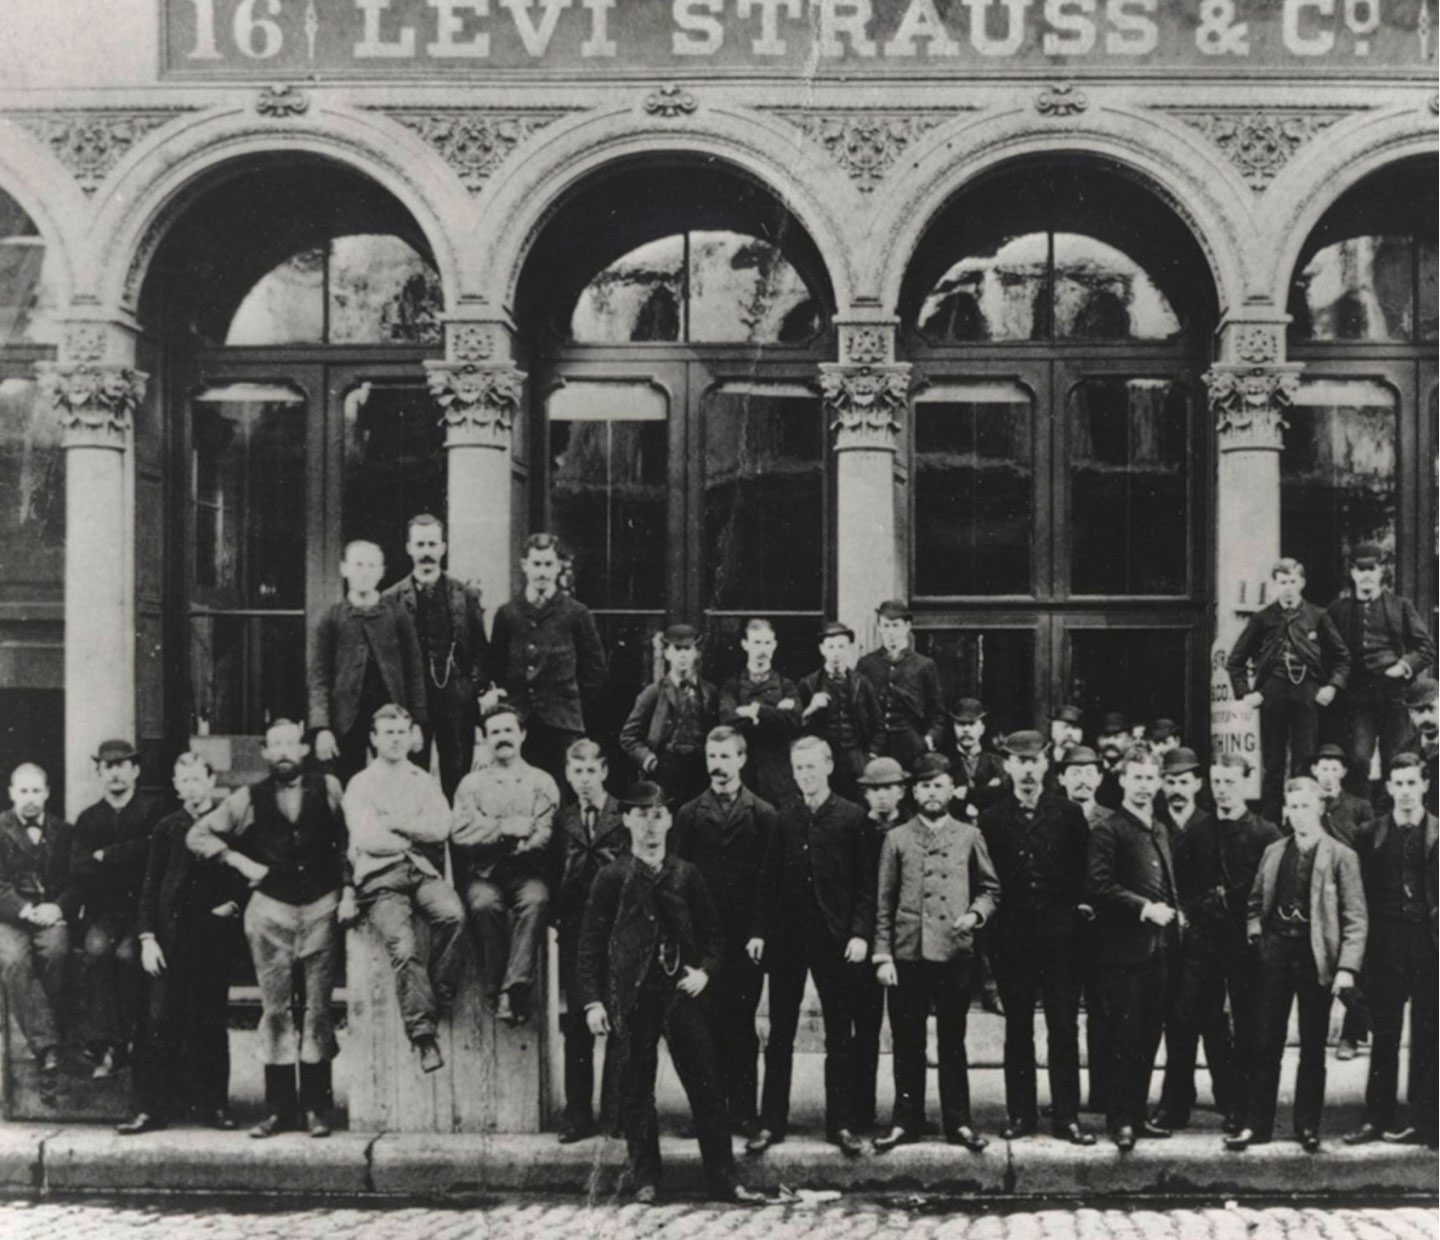 History of Levi Strauss & Co.